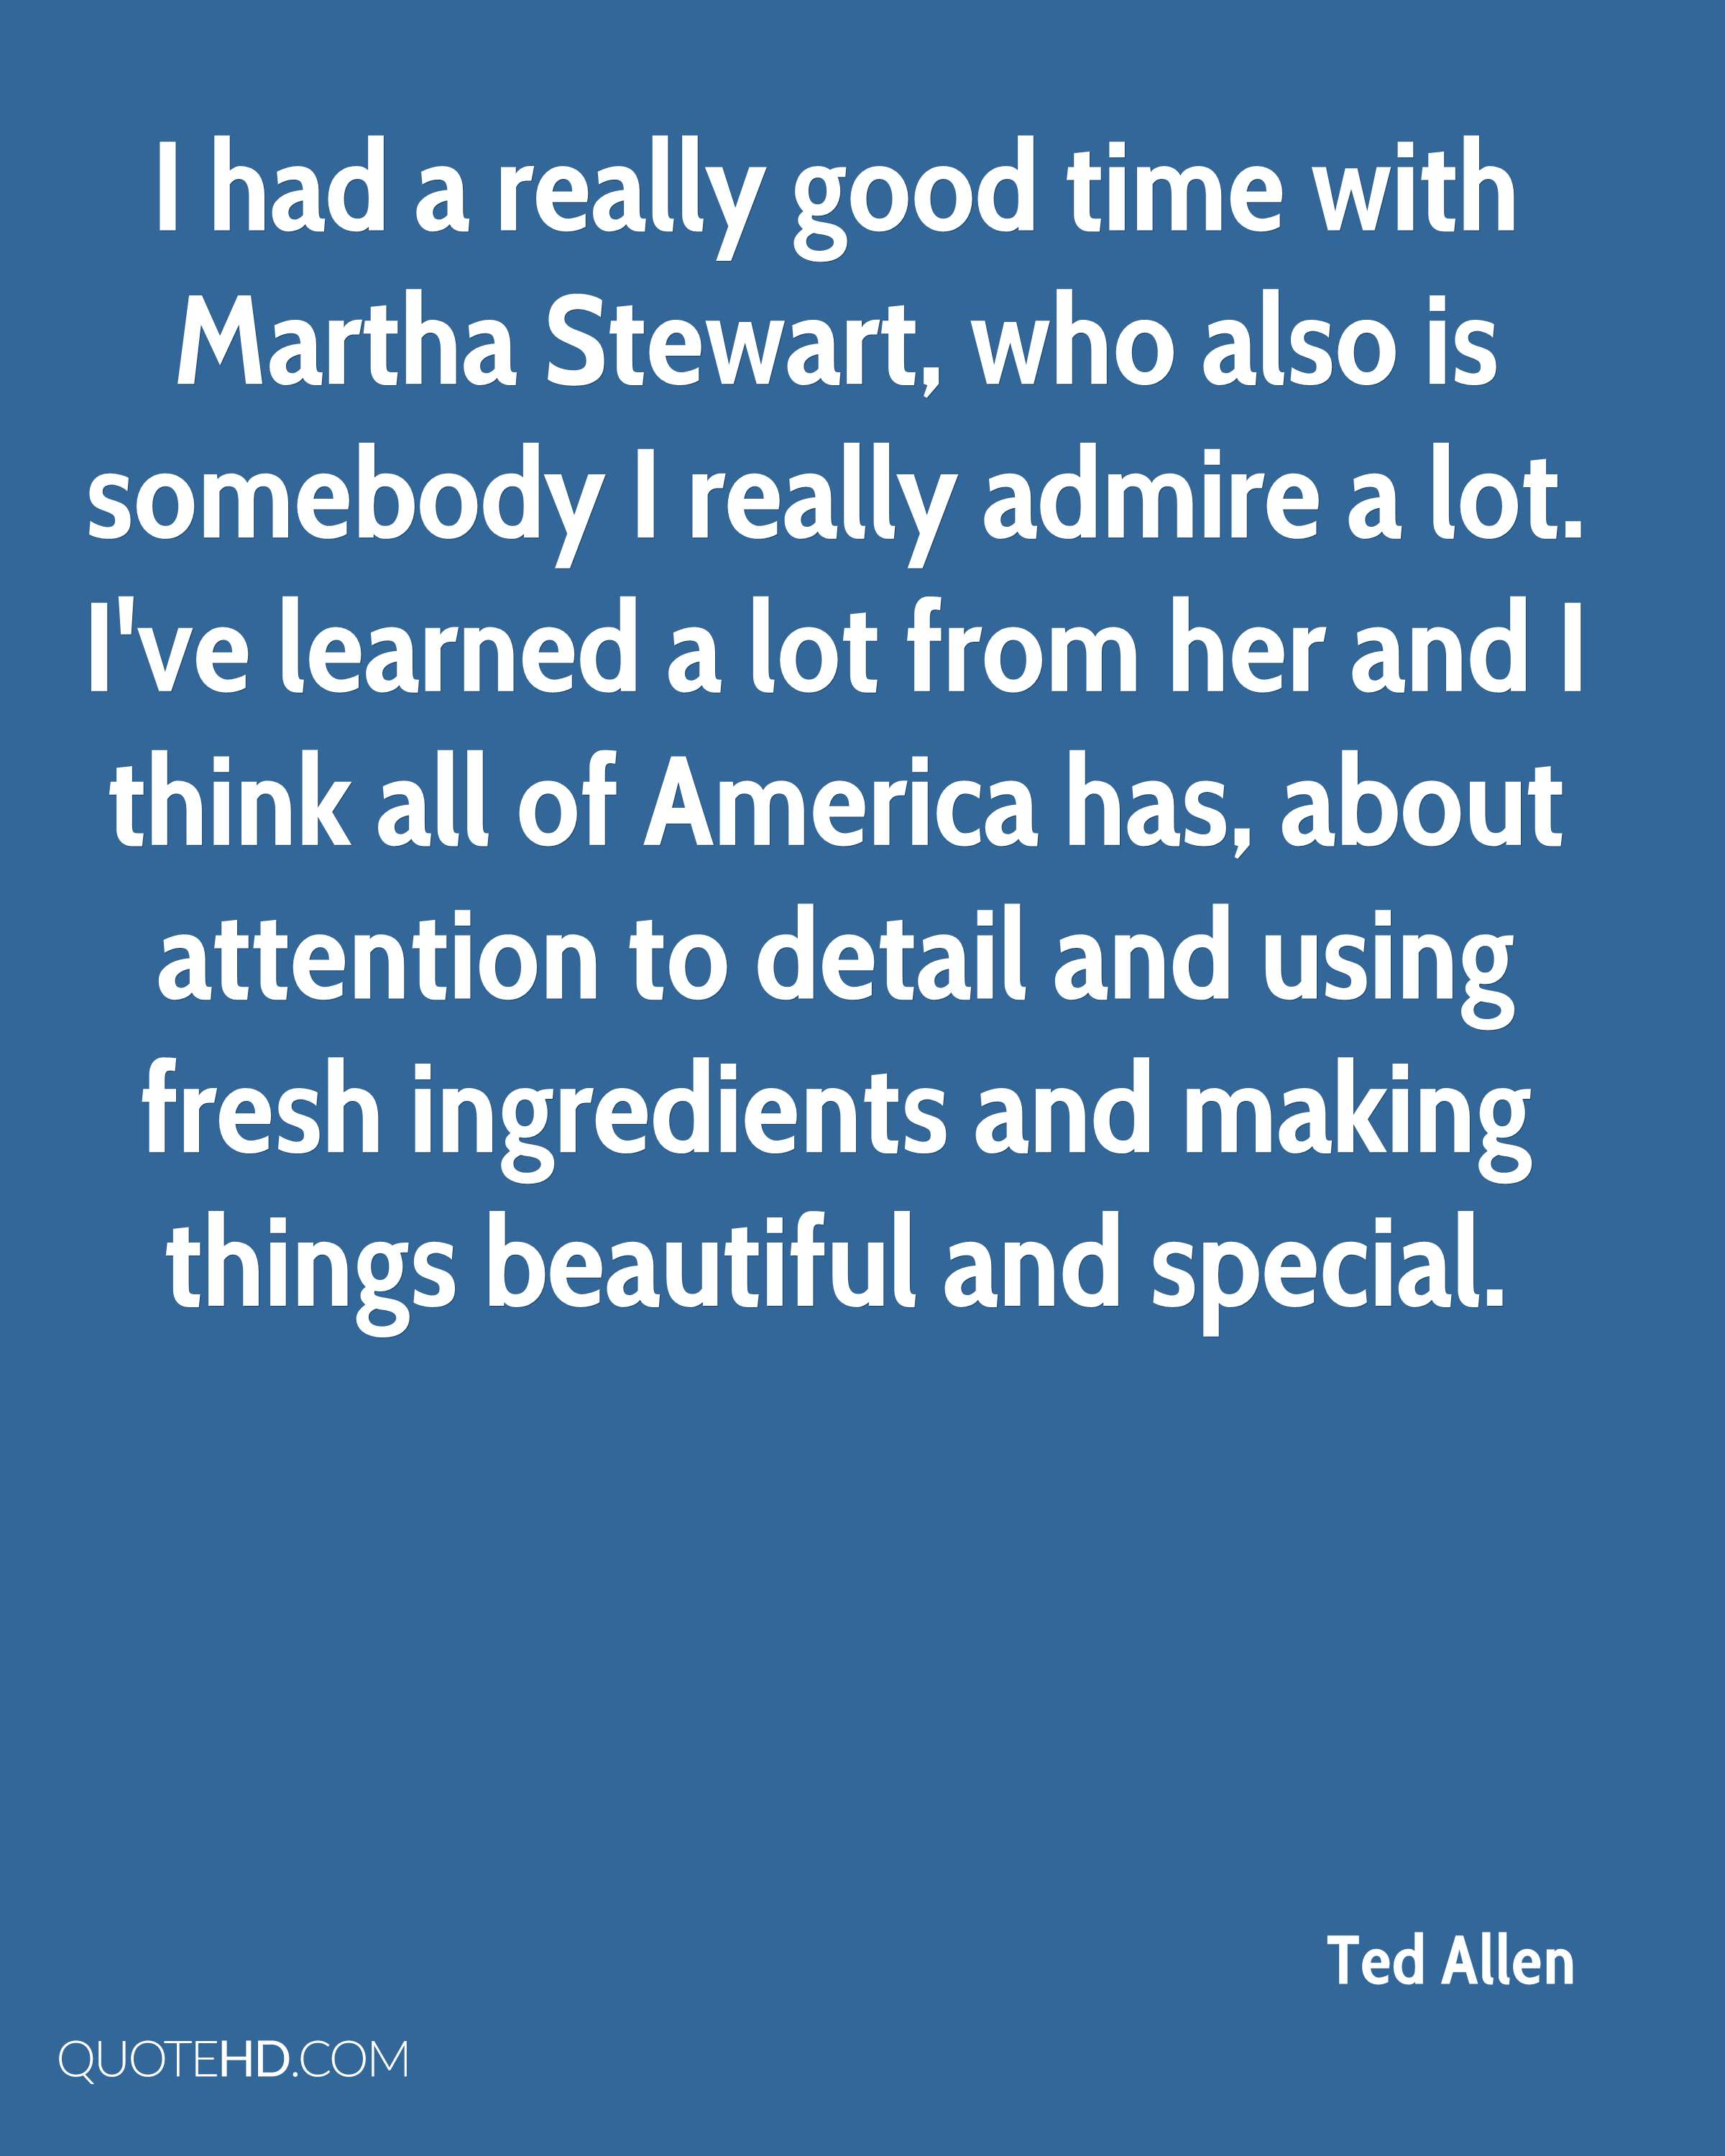 I had a really good time with Martha Stewart, who also is somebody I really admire a lot. I've learned a lot from her and I think all of America has, about attention to detail and using fresh ingredients and making things beautiful and special.